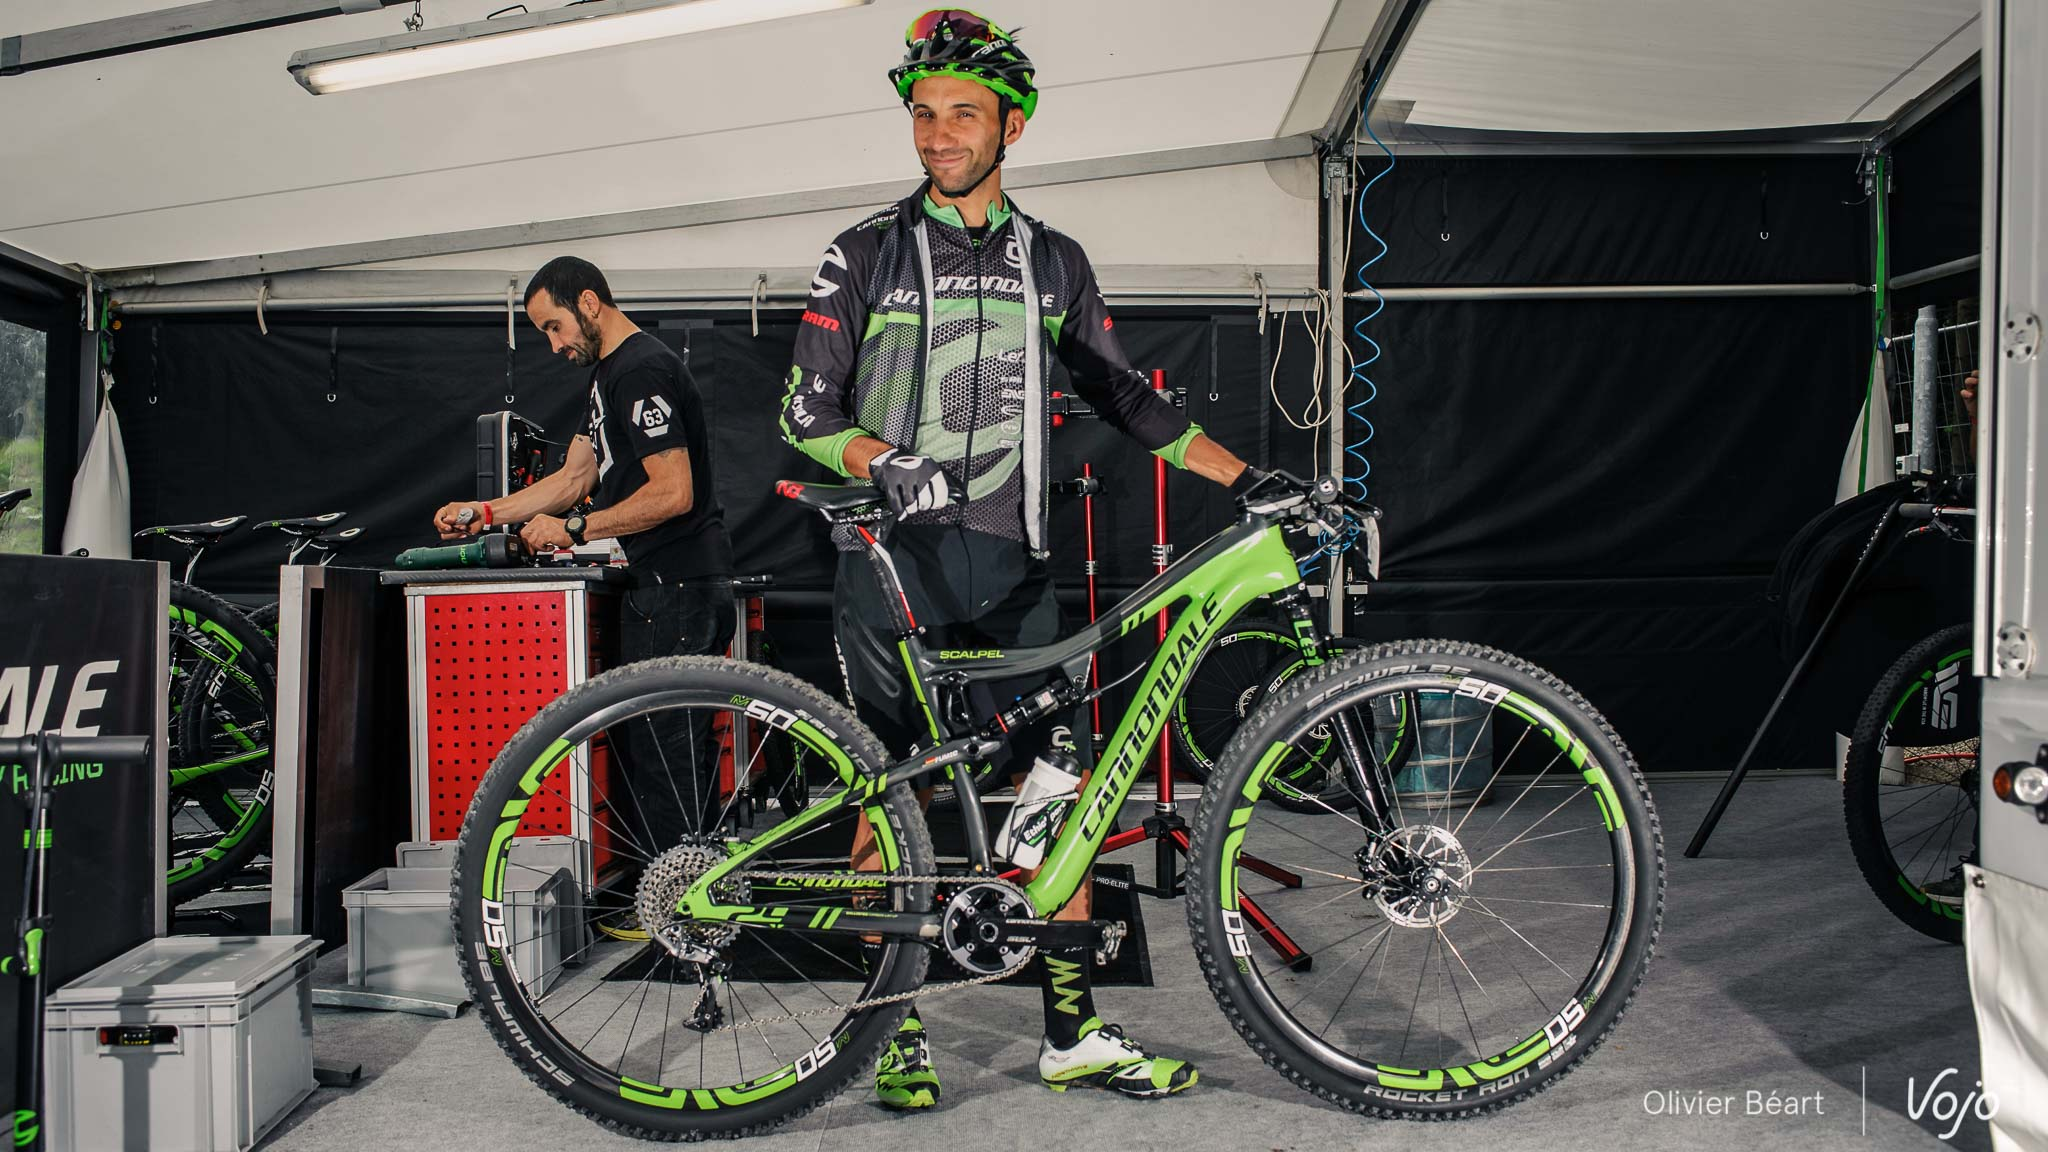 World_Cup_MTB_Pro_Bike_Check_Cannondale_Scalpel_Manuel_Fumic_Copyright_OBeart_VojoMag-1